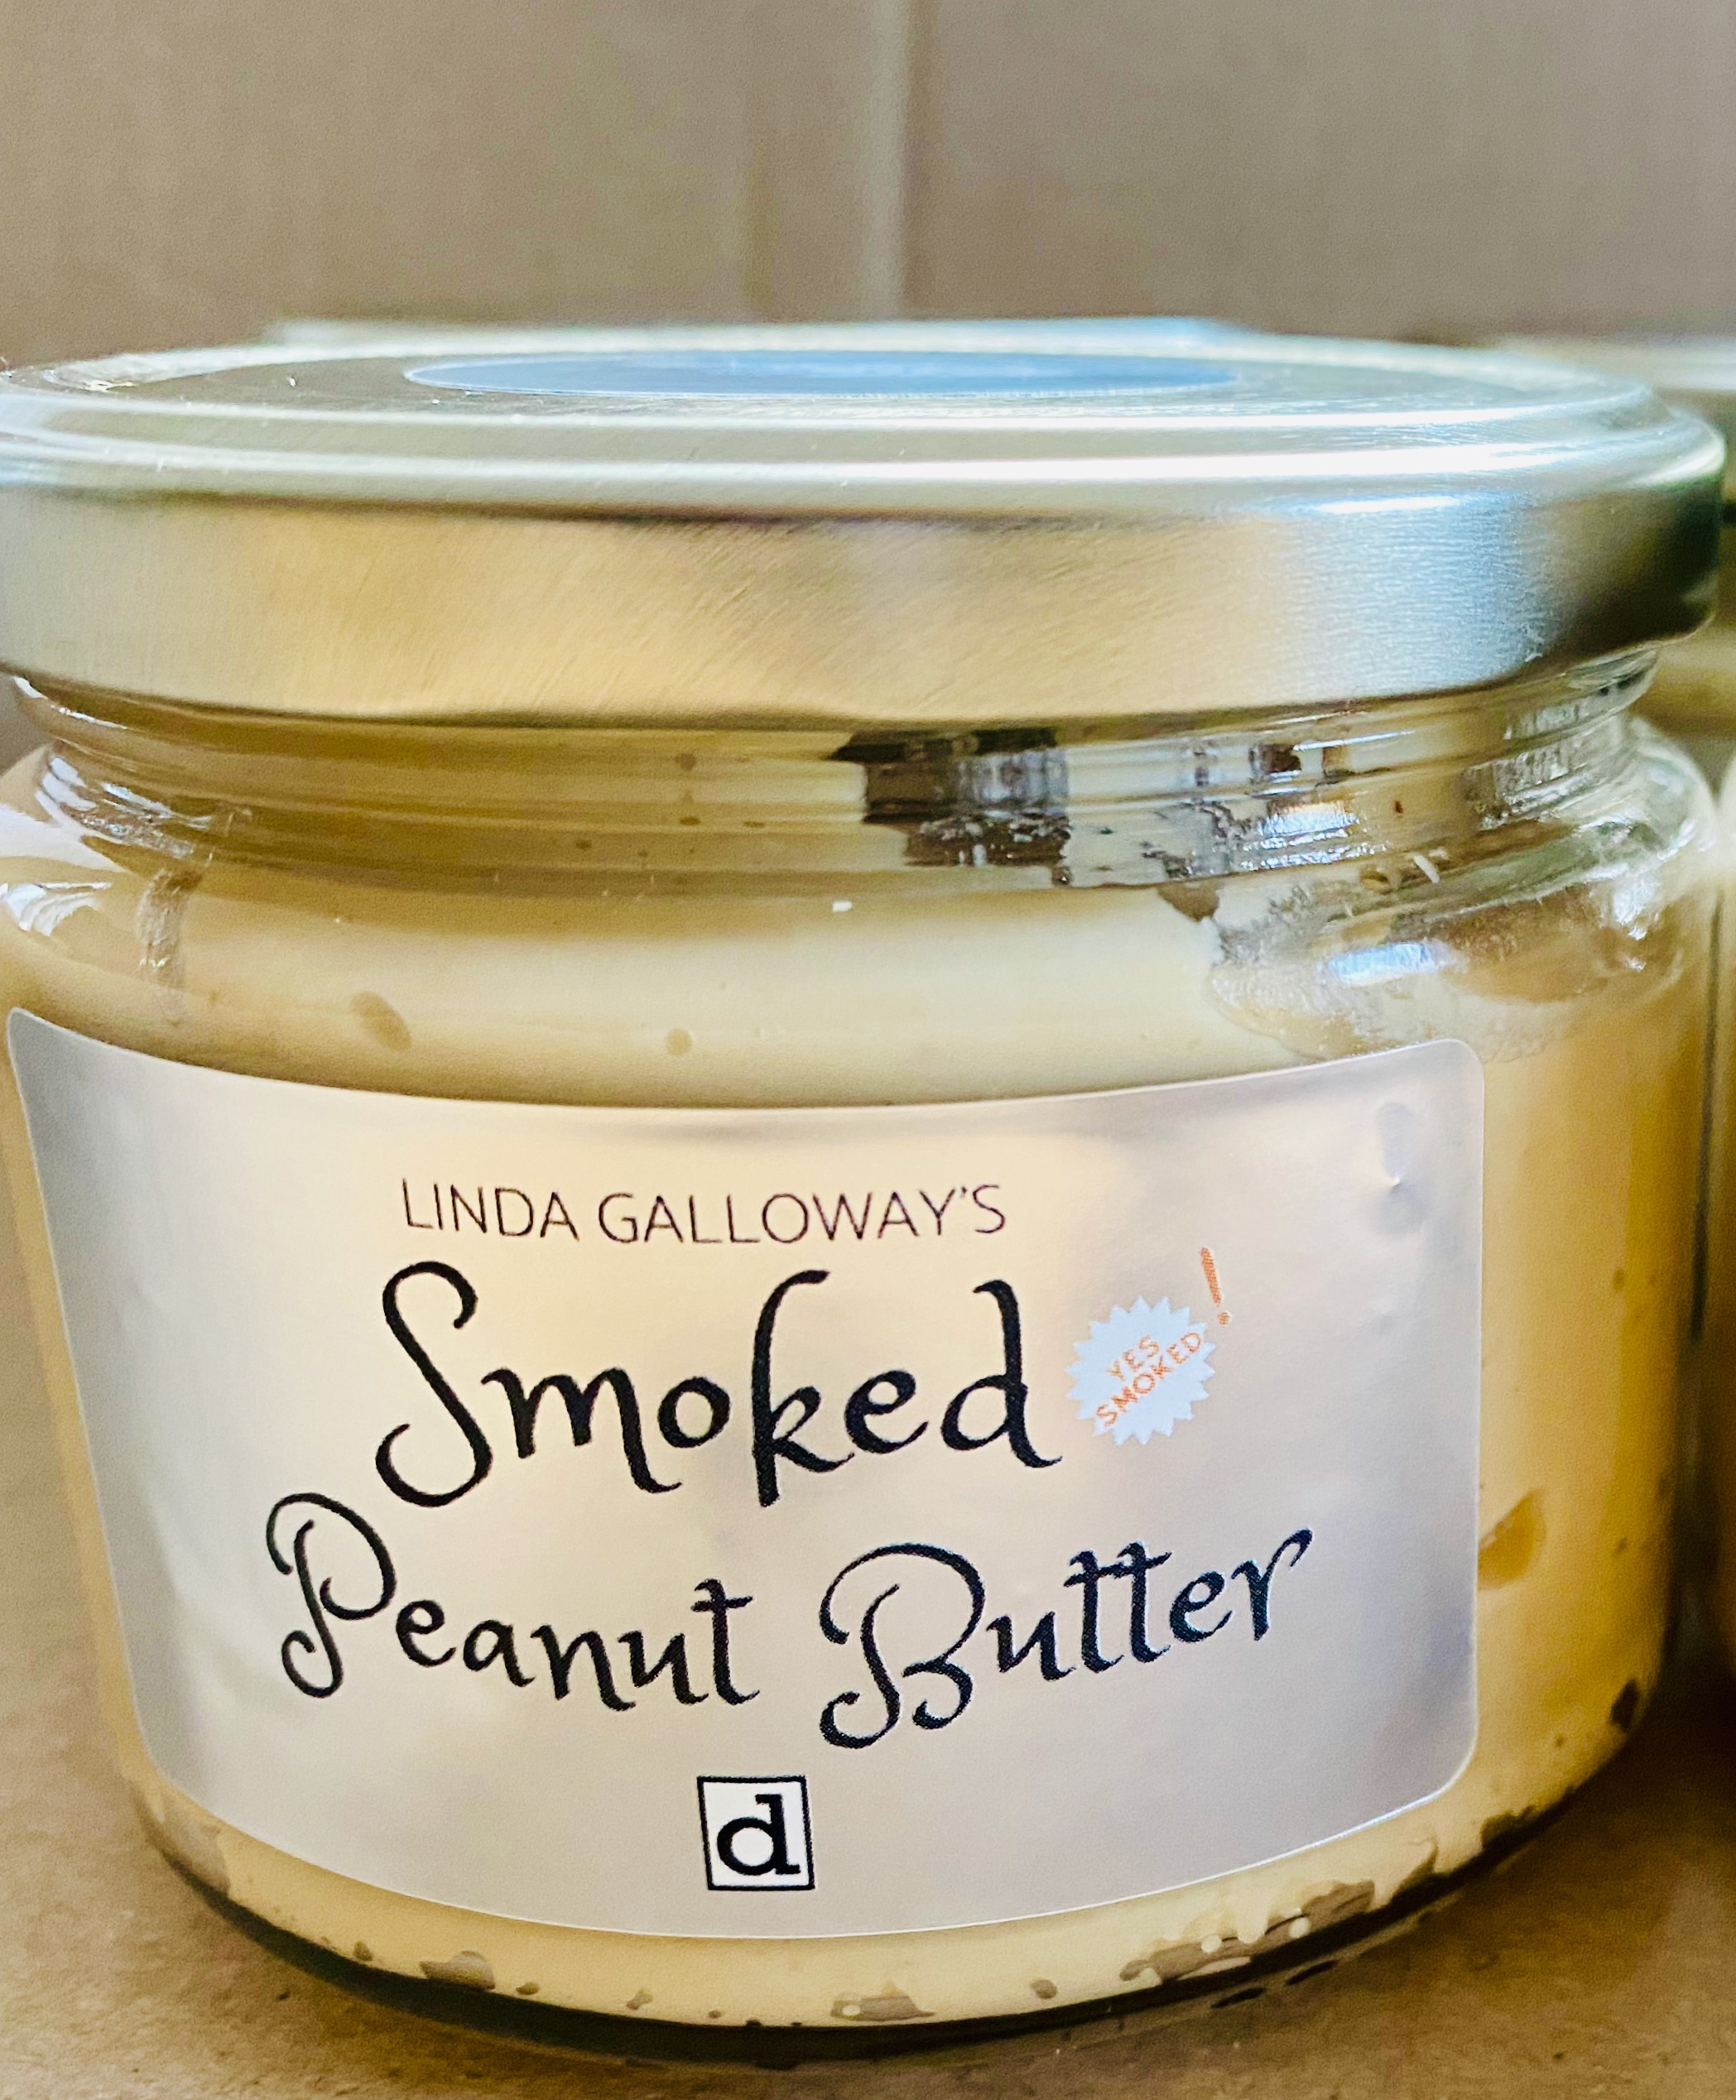 A jar of smoked peanut butter